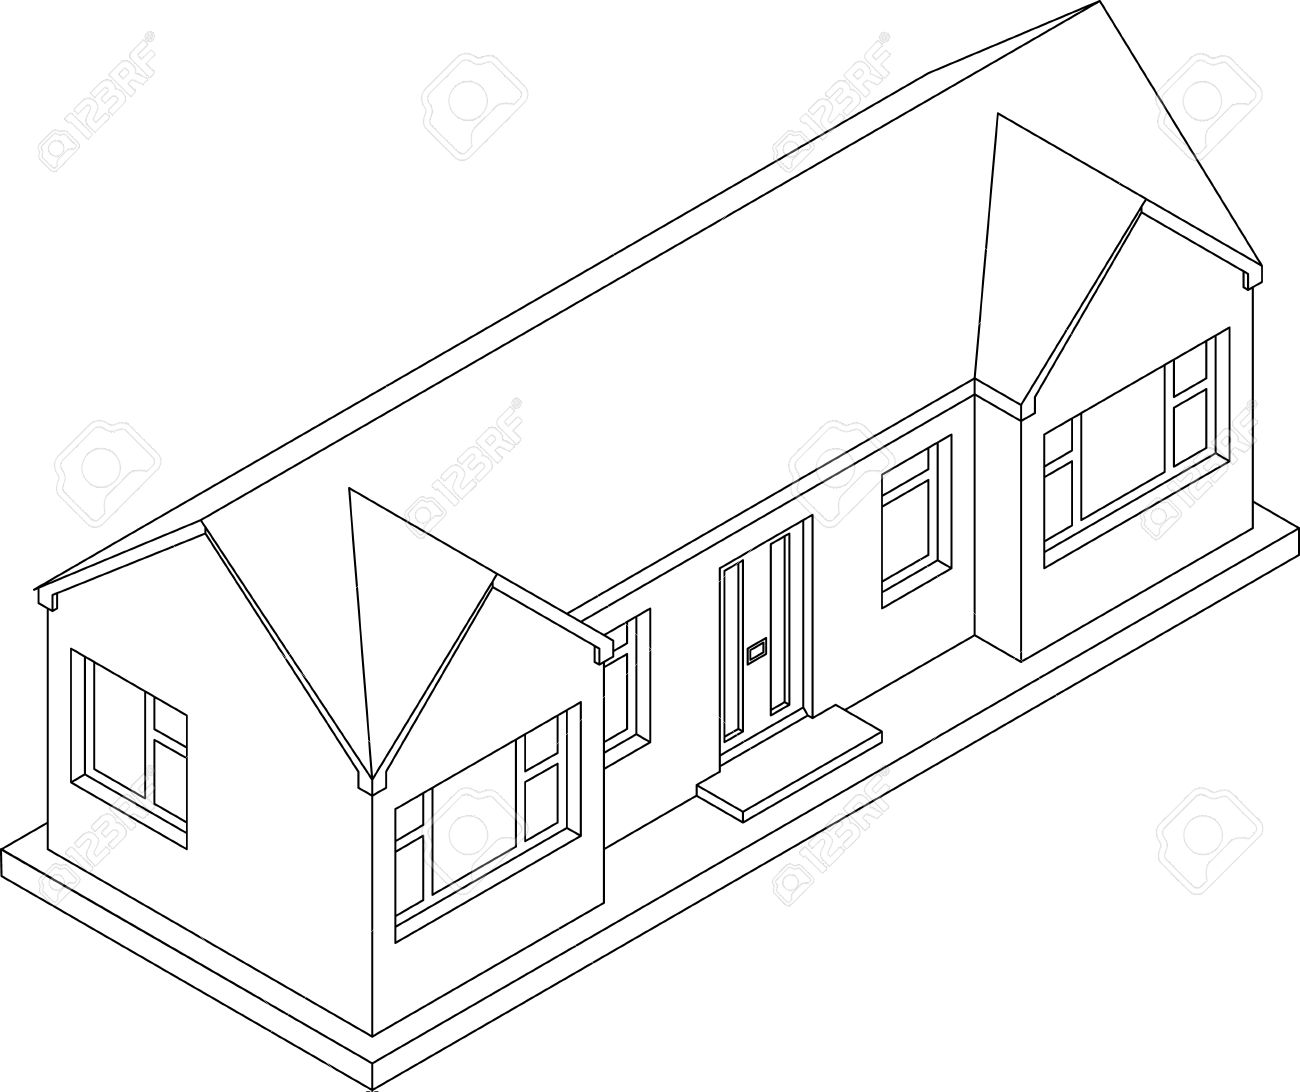 3d Isometric Line Drawing Of A Double Fronted Single Story House